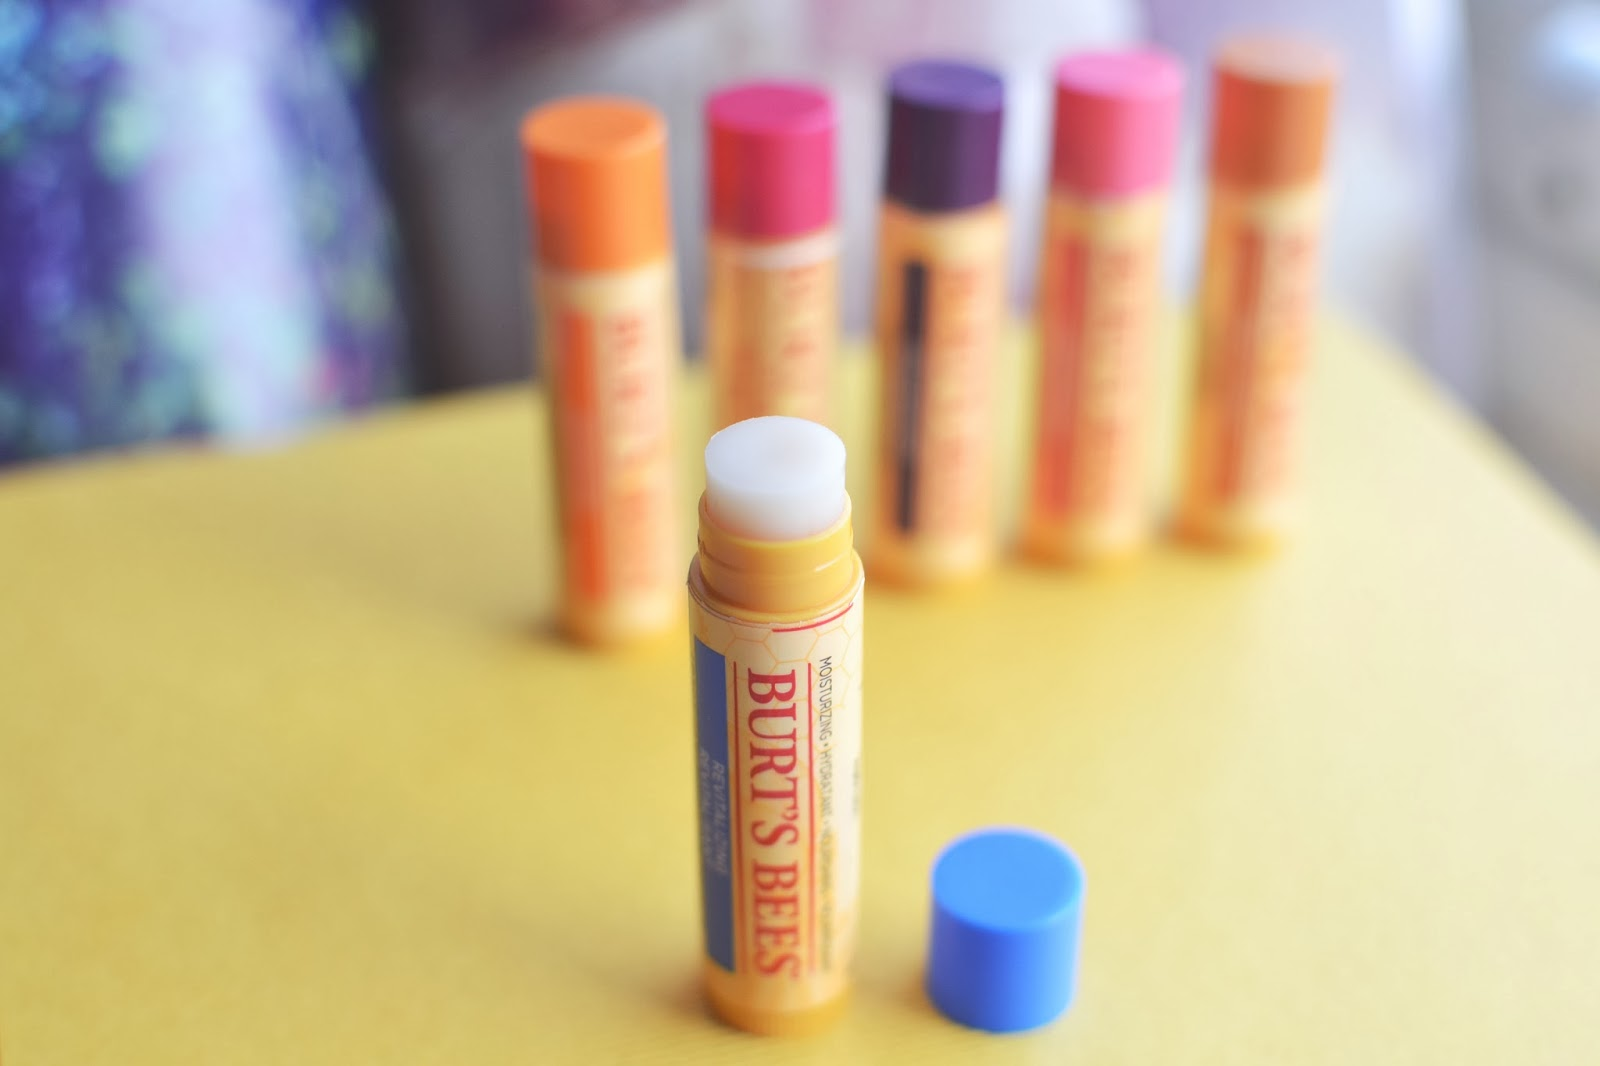 burts bees lip balm, burts bees lip balm review, burts bees blueberry and dark chocolate